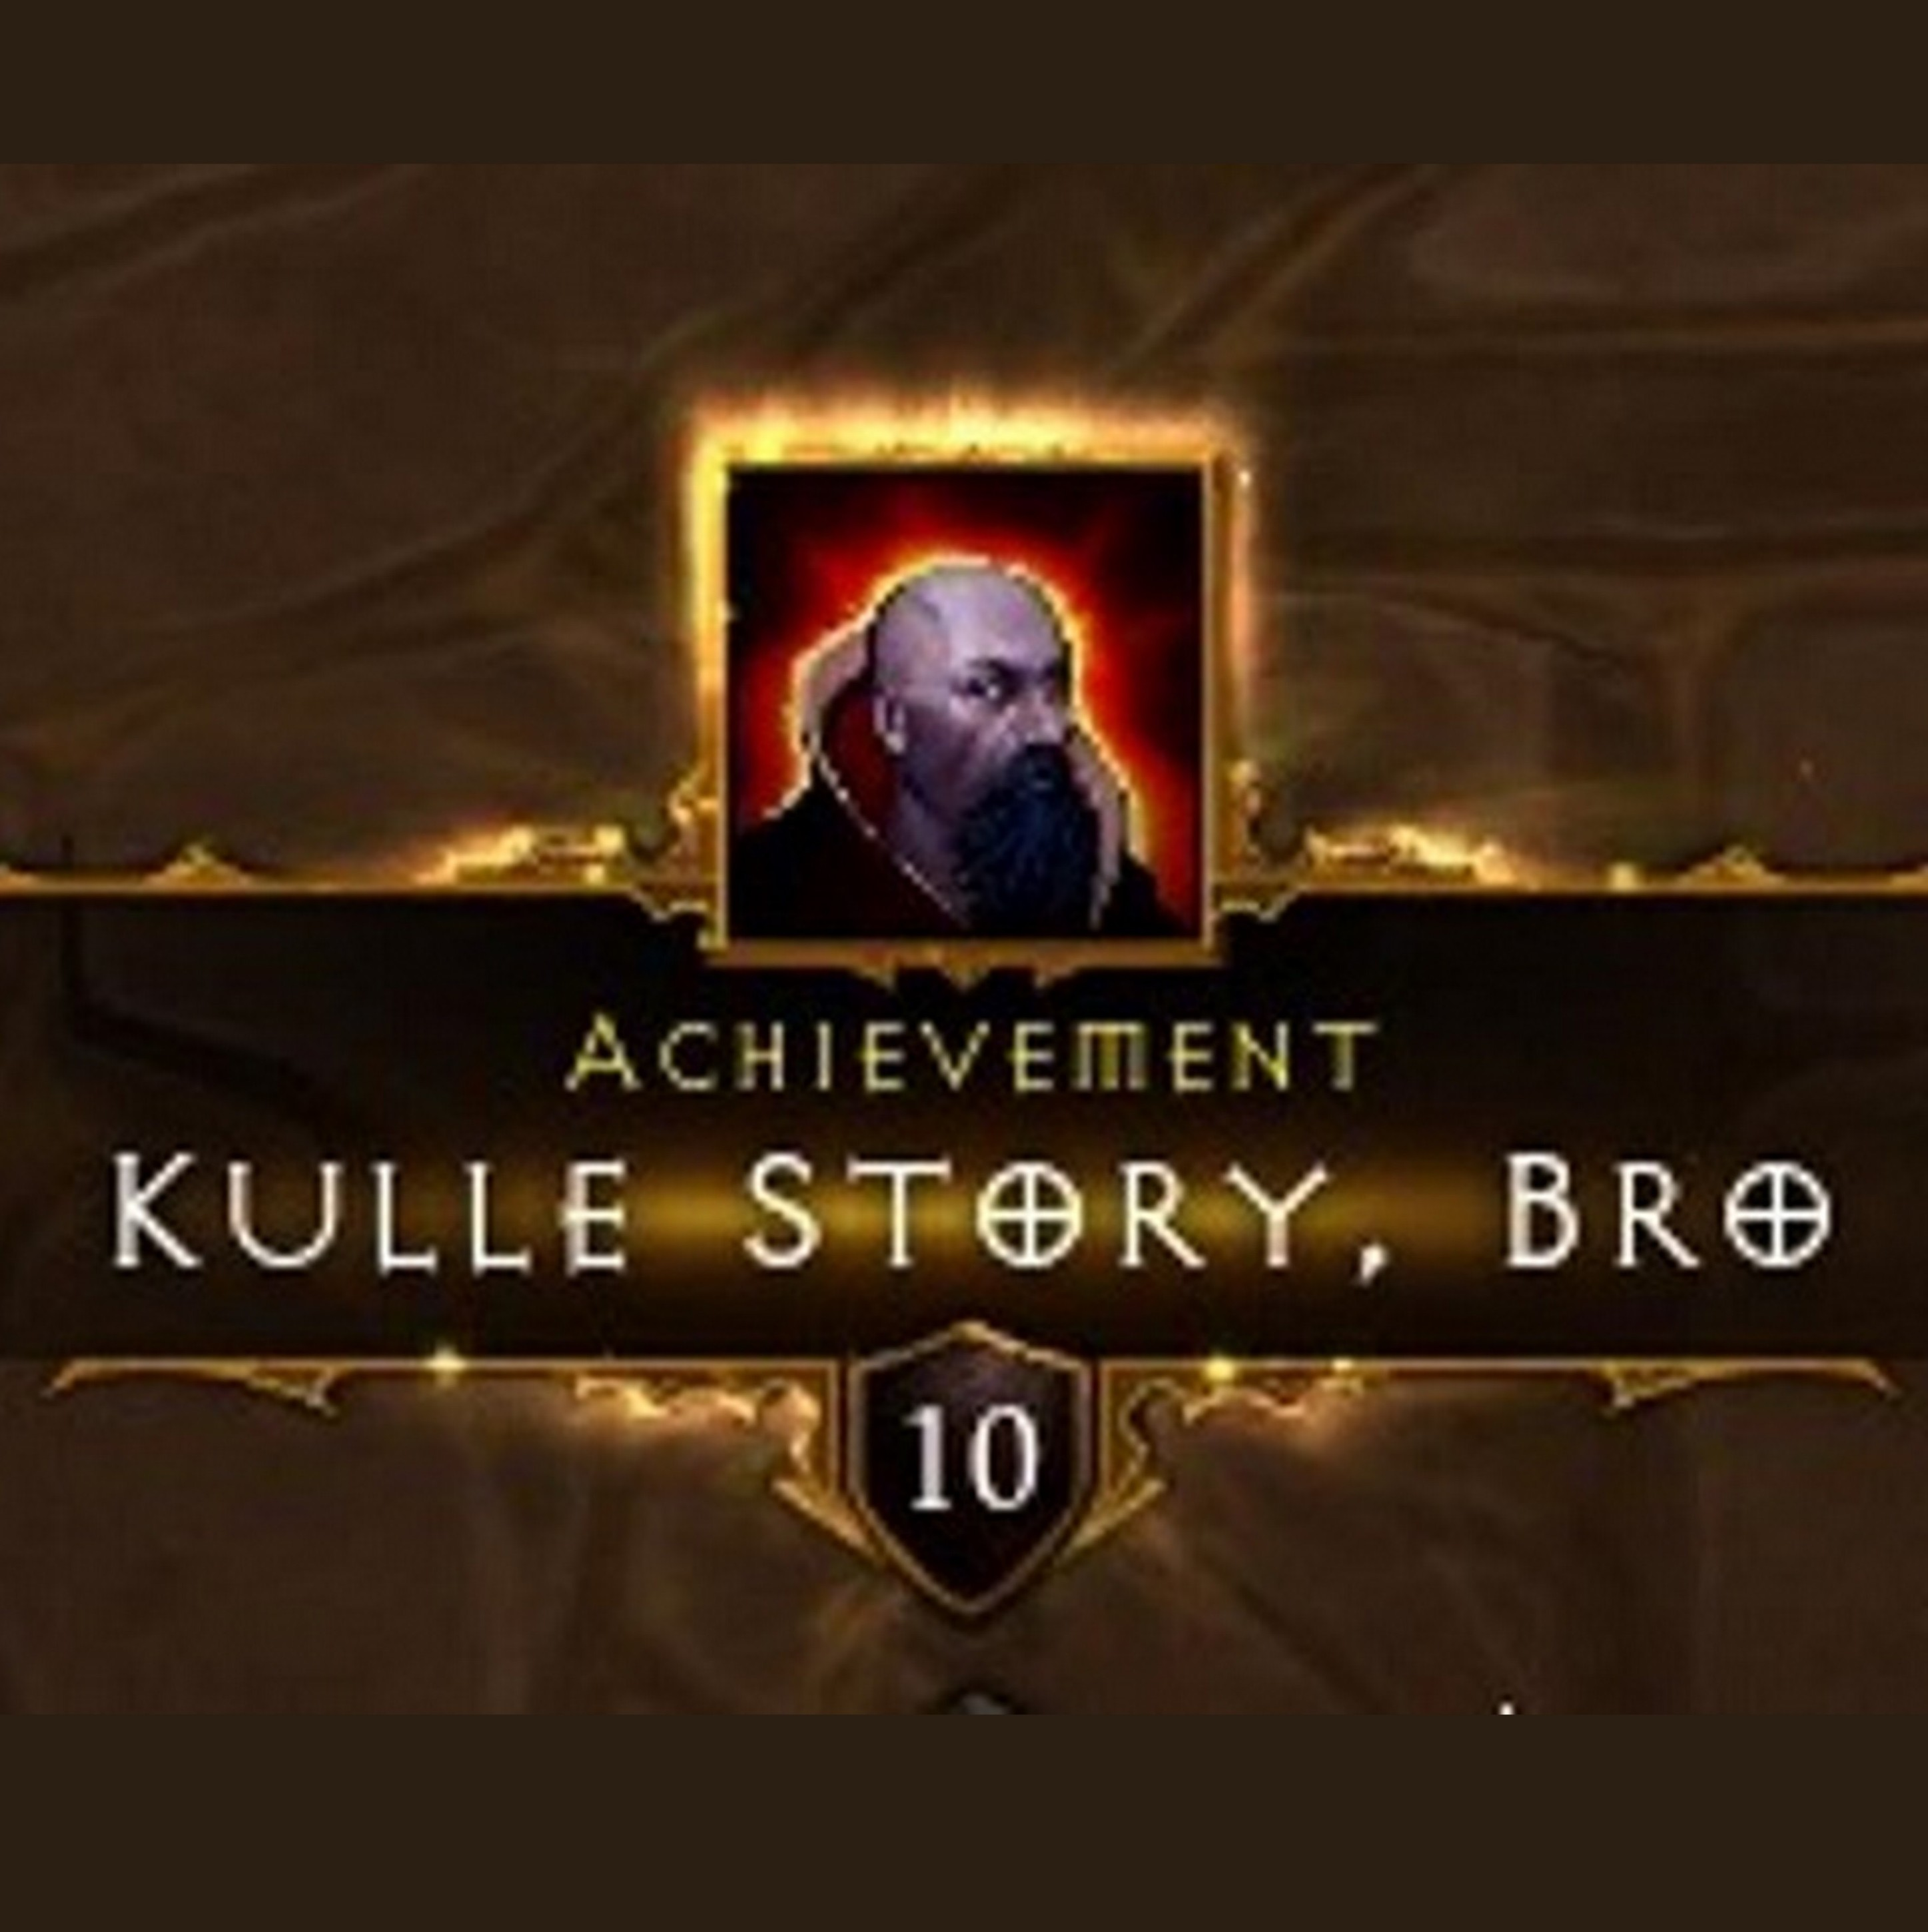 Kulle Story Bro - A Diablo 3 Podcast Episode 39